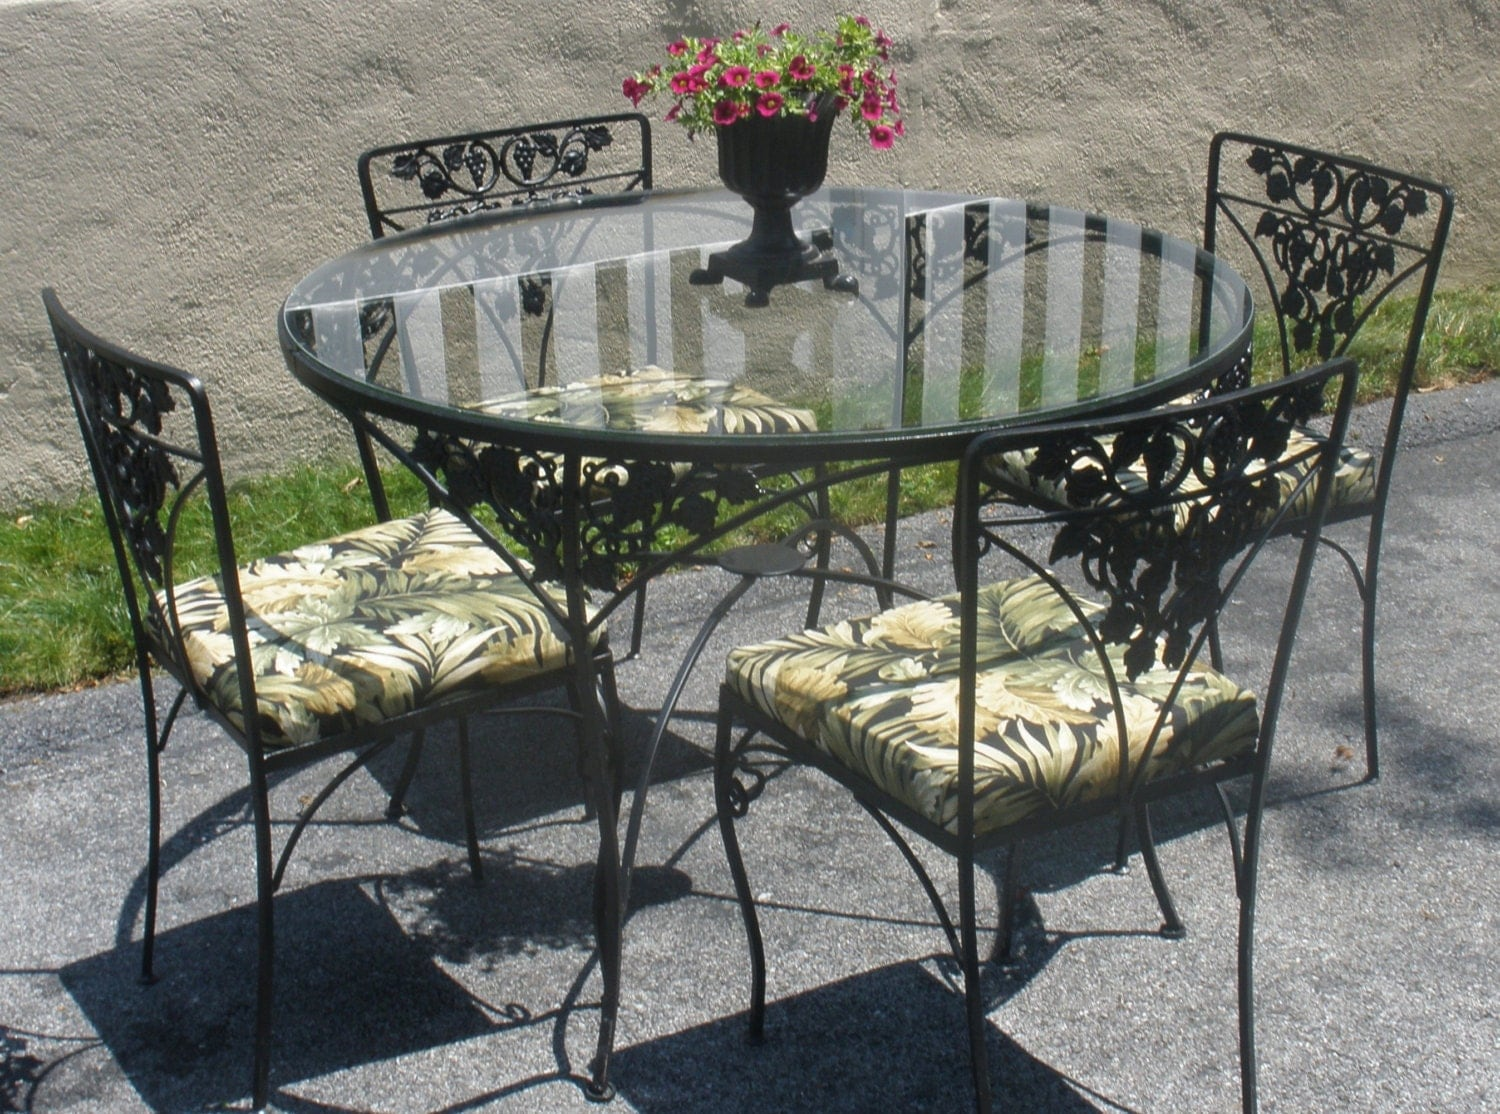 Wrought iron table 4 chairs cushions woodard grapes for Woodard outdoor furniture